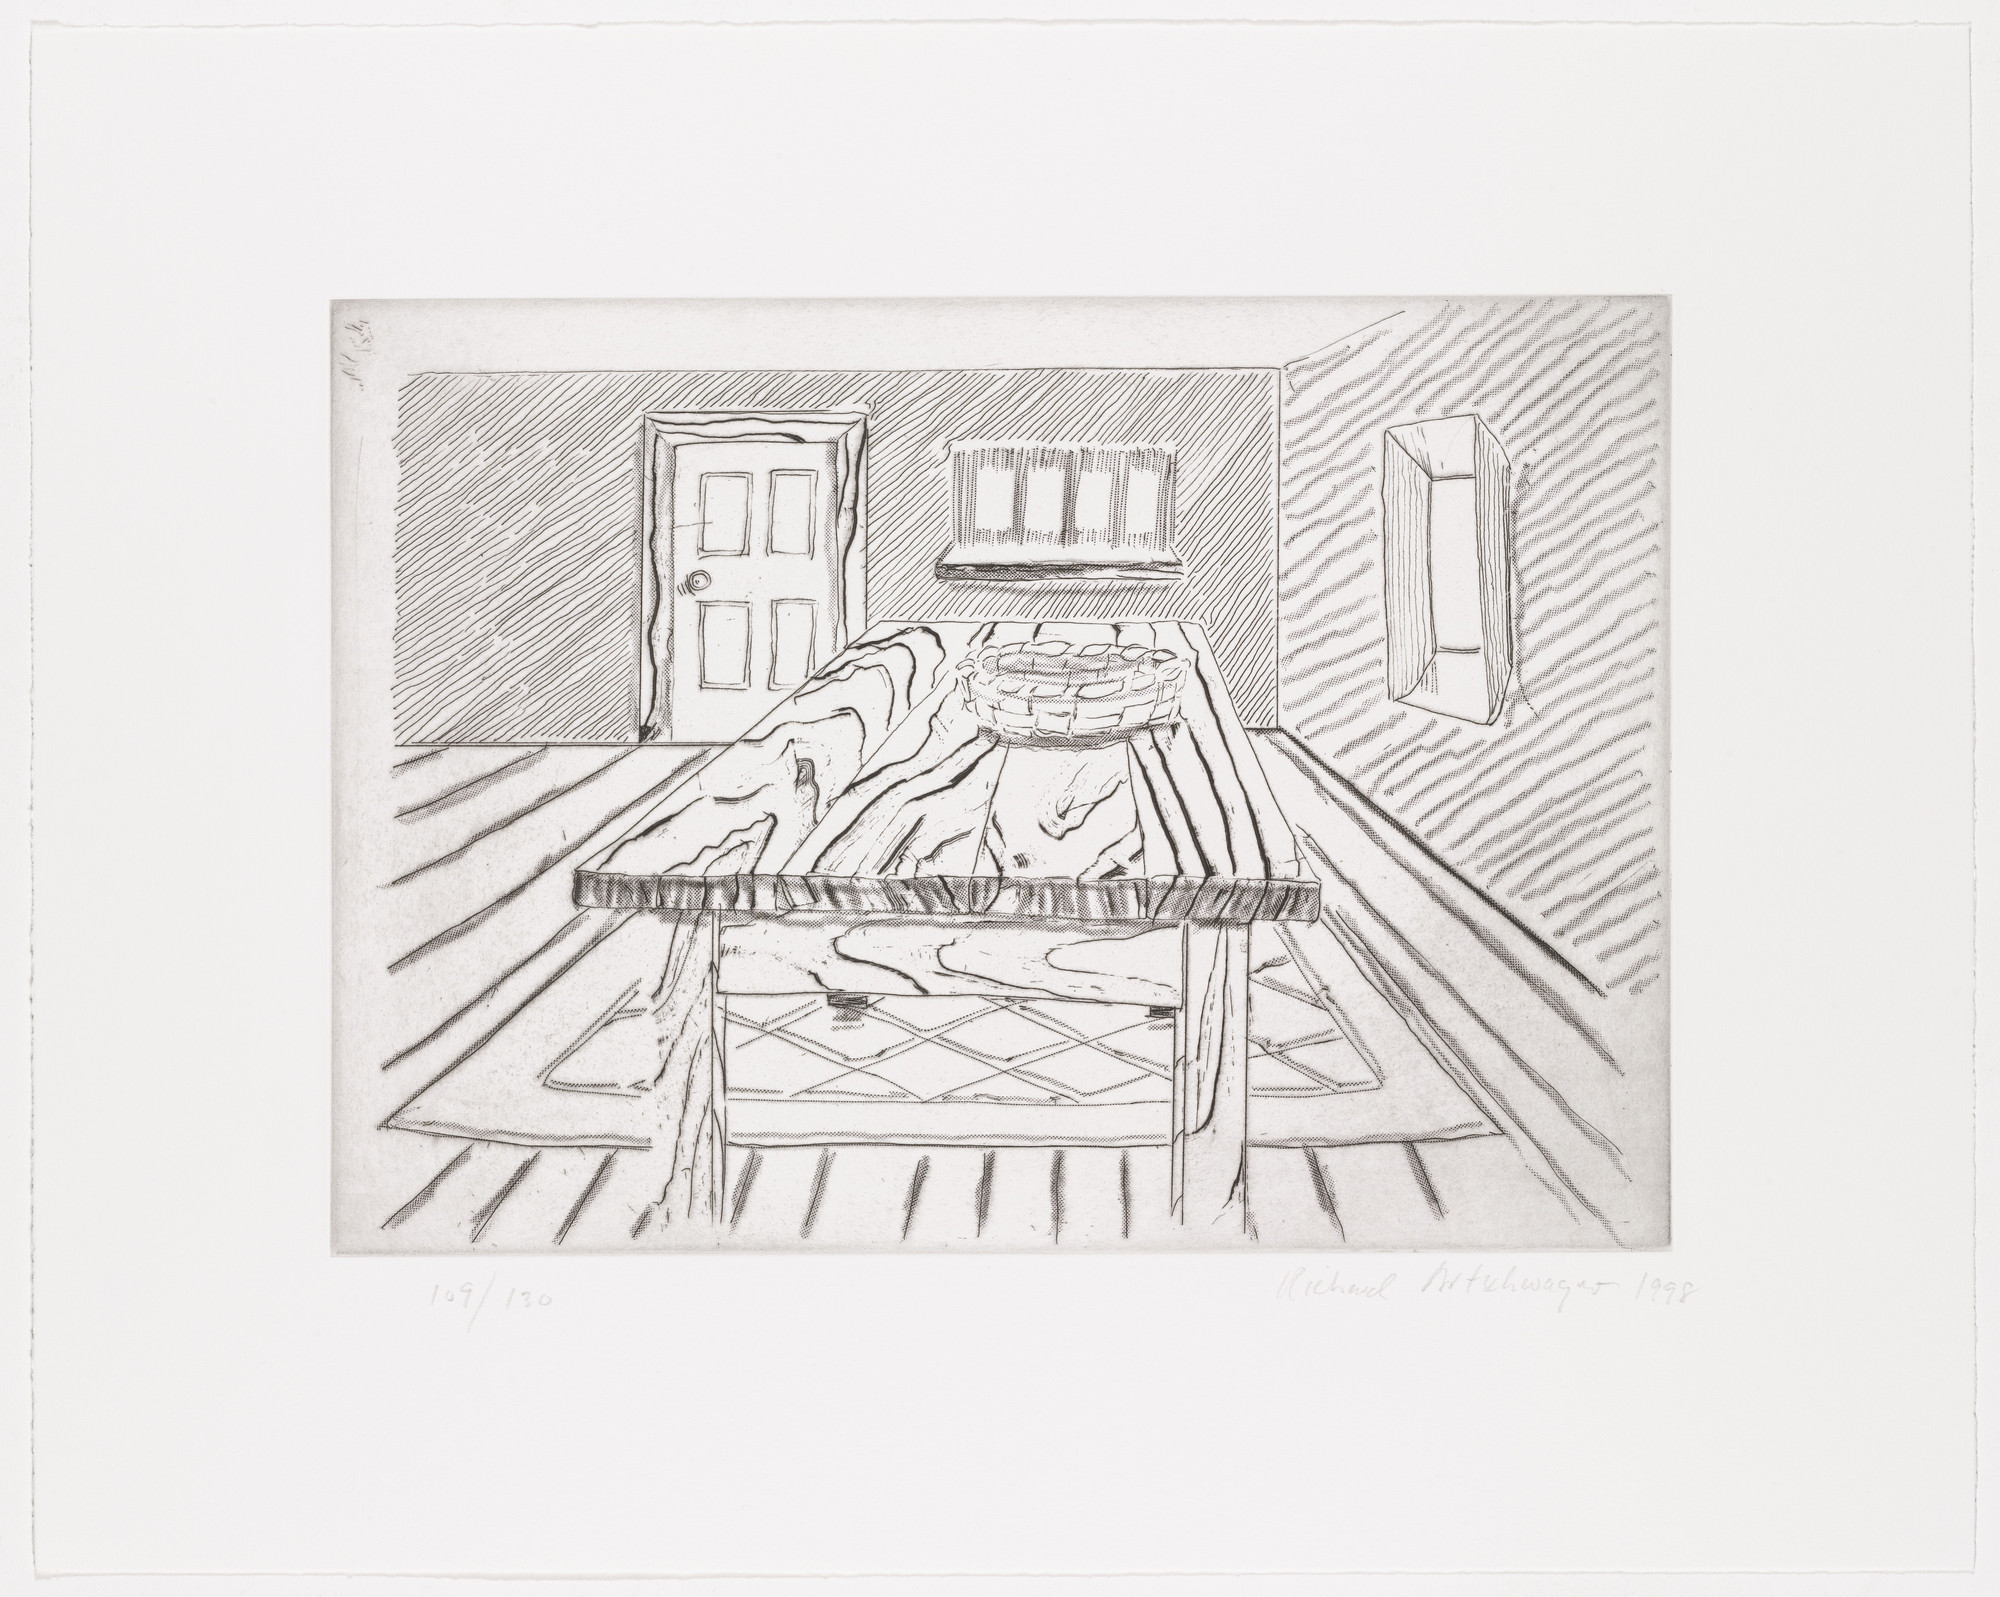 Richard Artschwager. Untitled from Notes on a Room. 1998